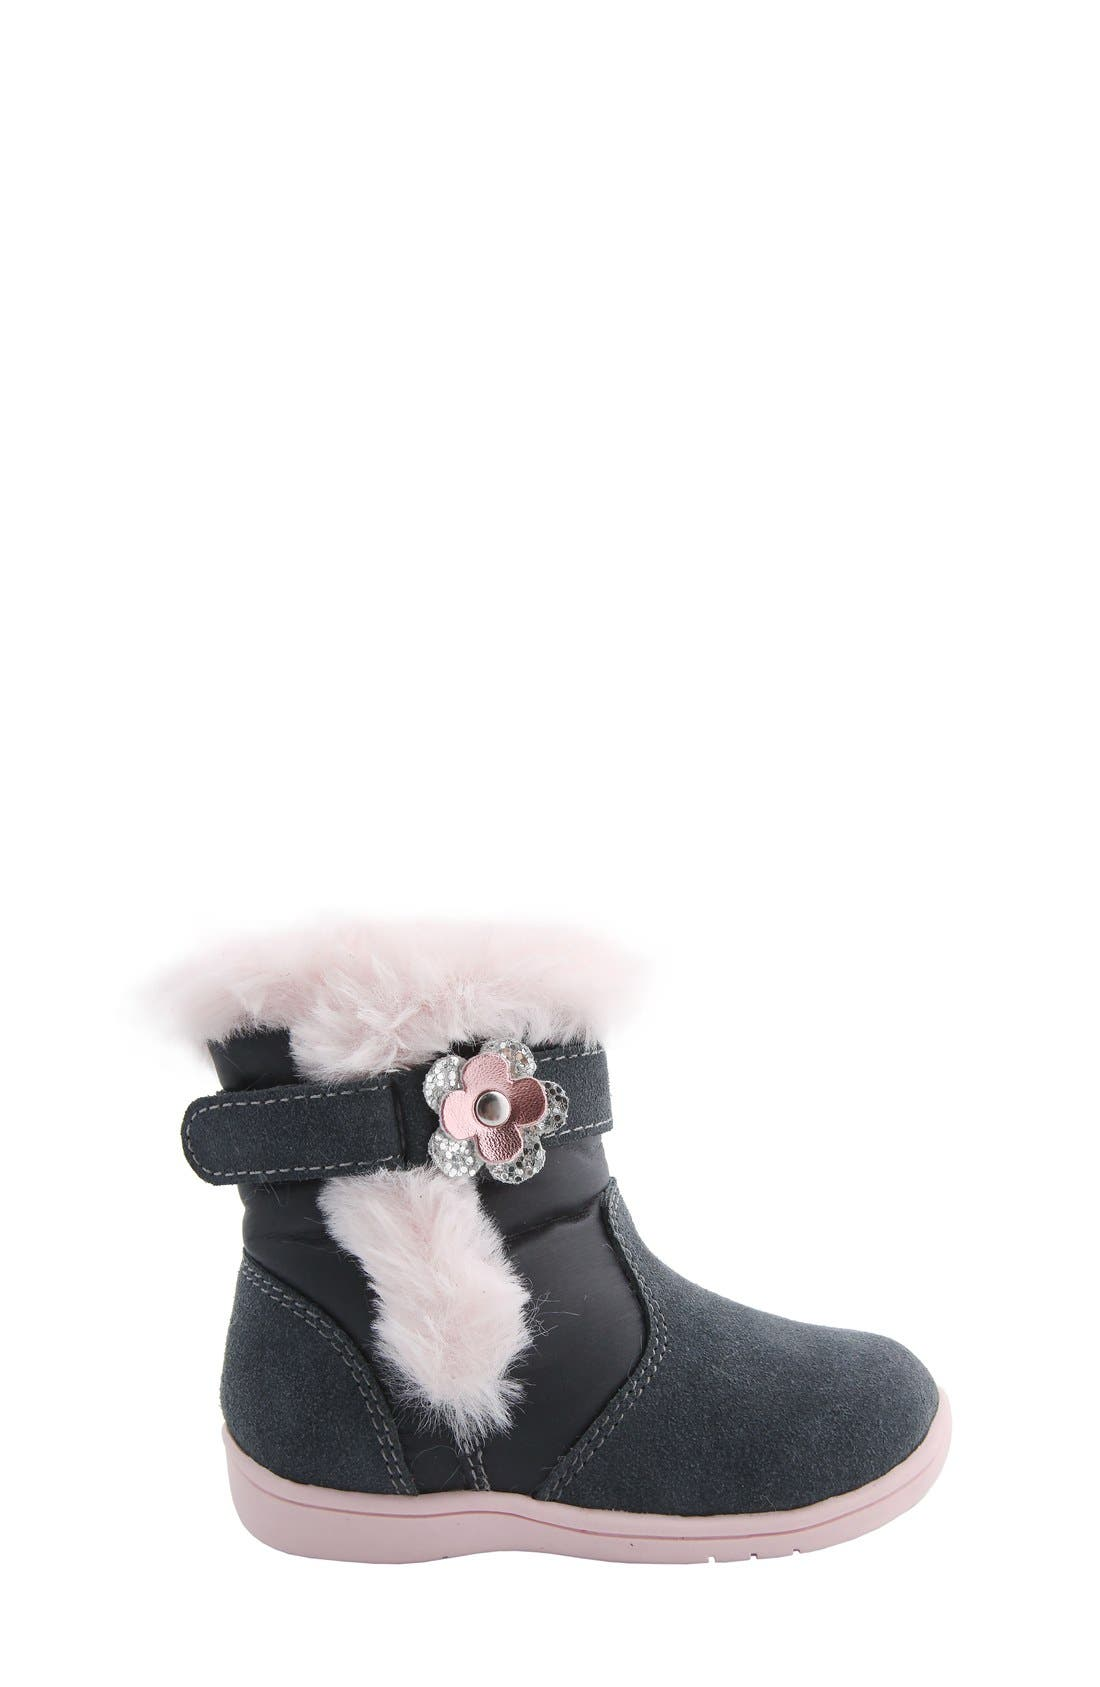 Nina 'Anya' Faux Fur Bootie,                             Alternate thumbnail 2, color,                             GREY SUEDE